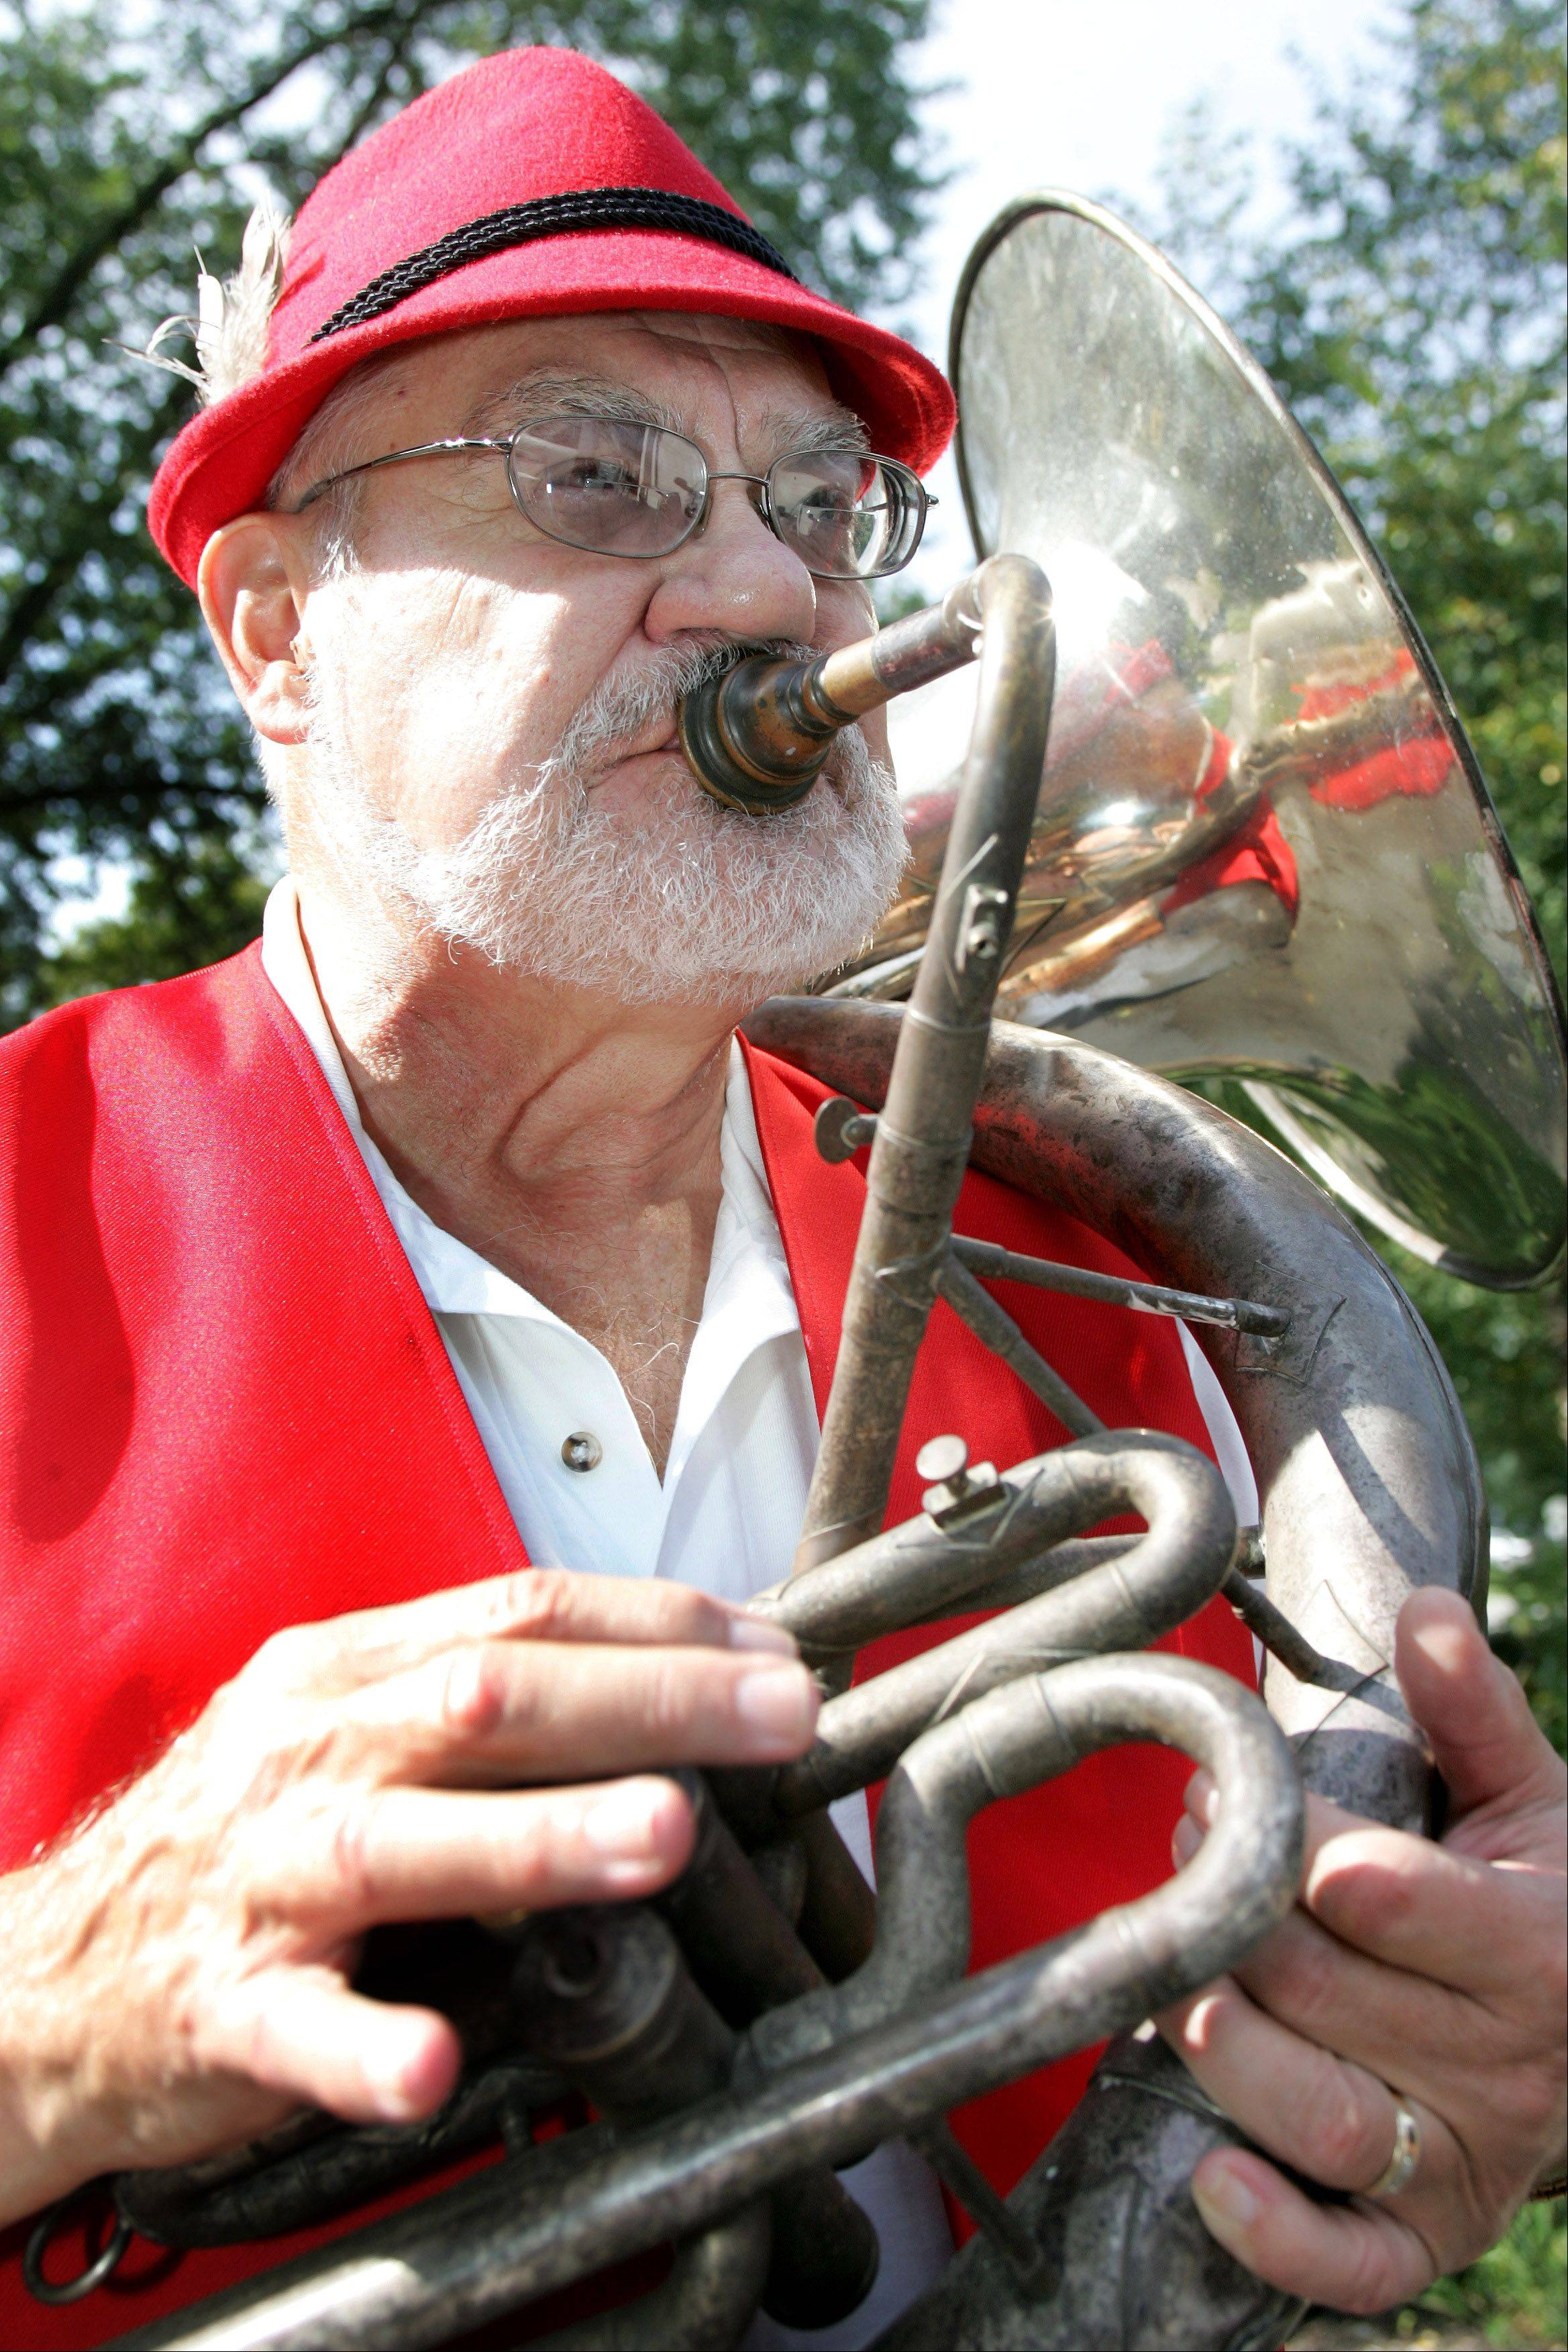 Ron Keller and his band are returning to Oktoberfest to play traditional German music.